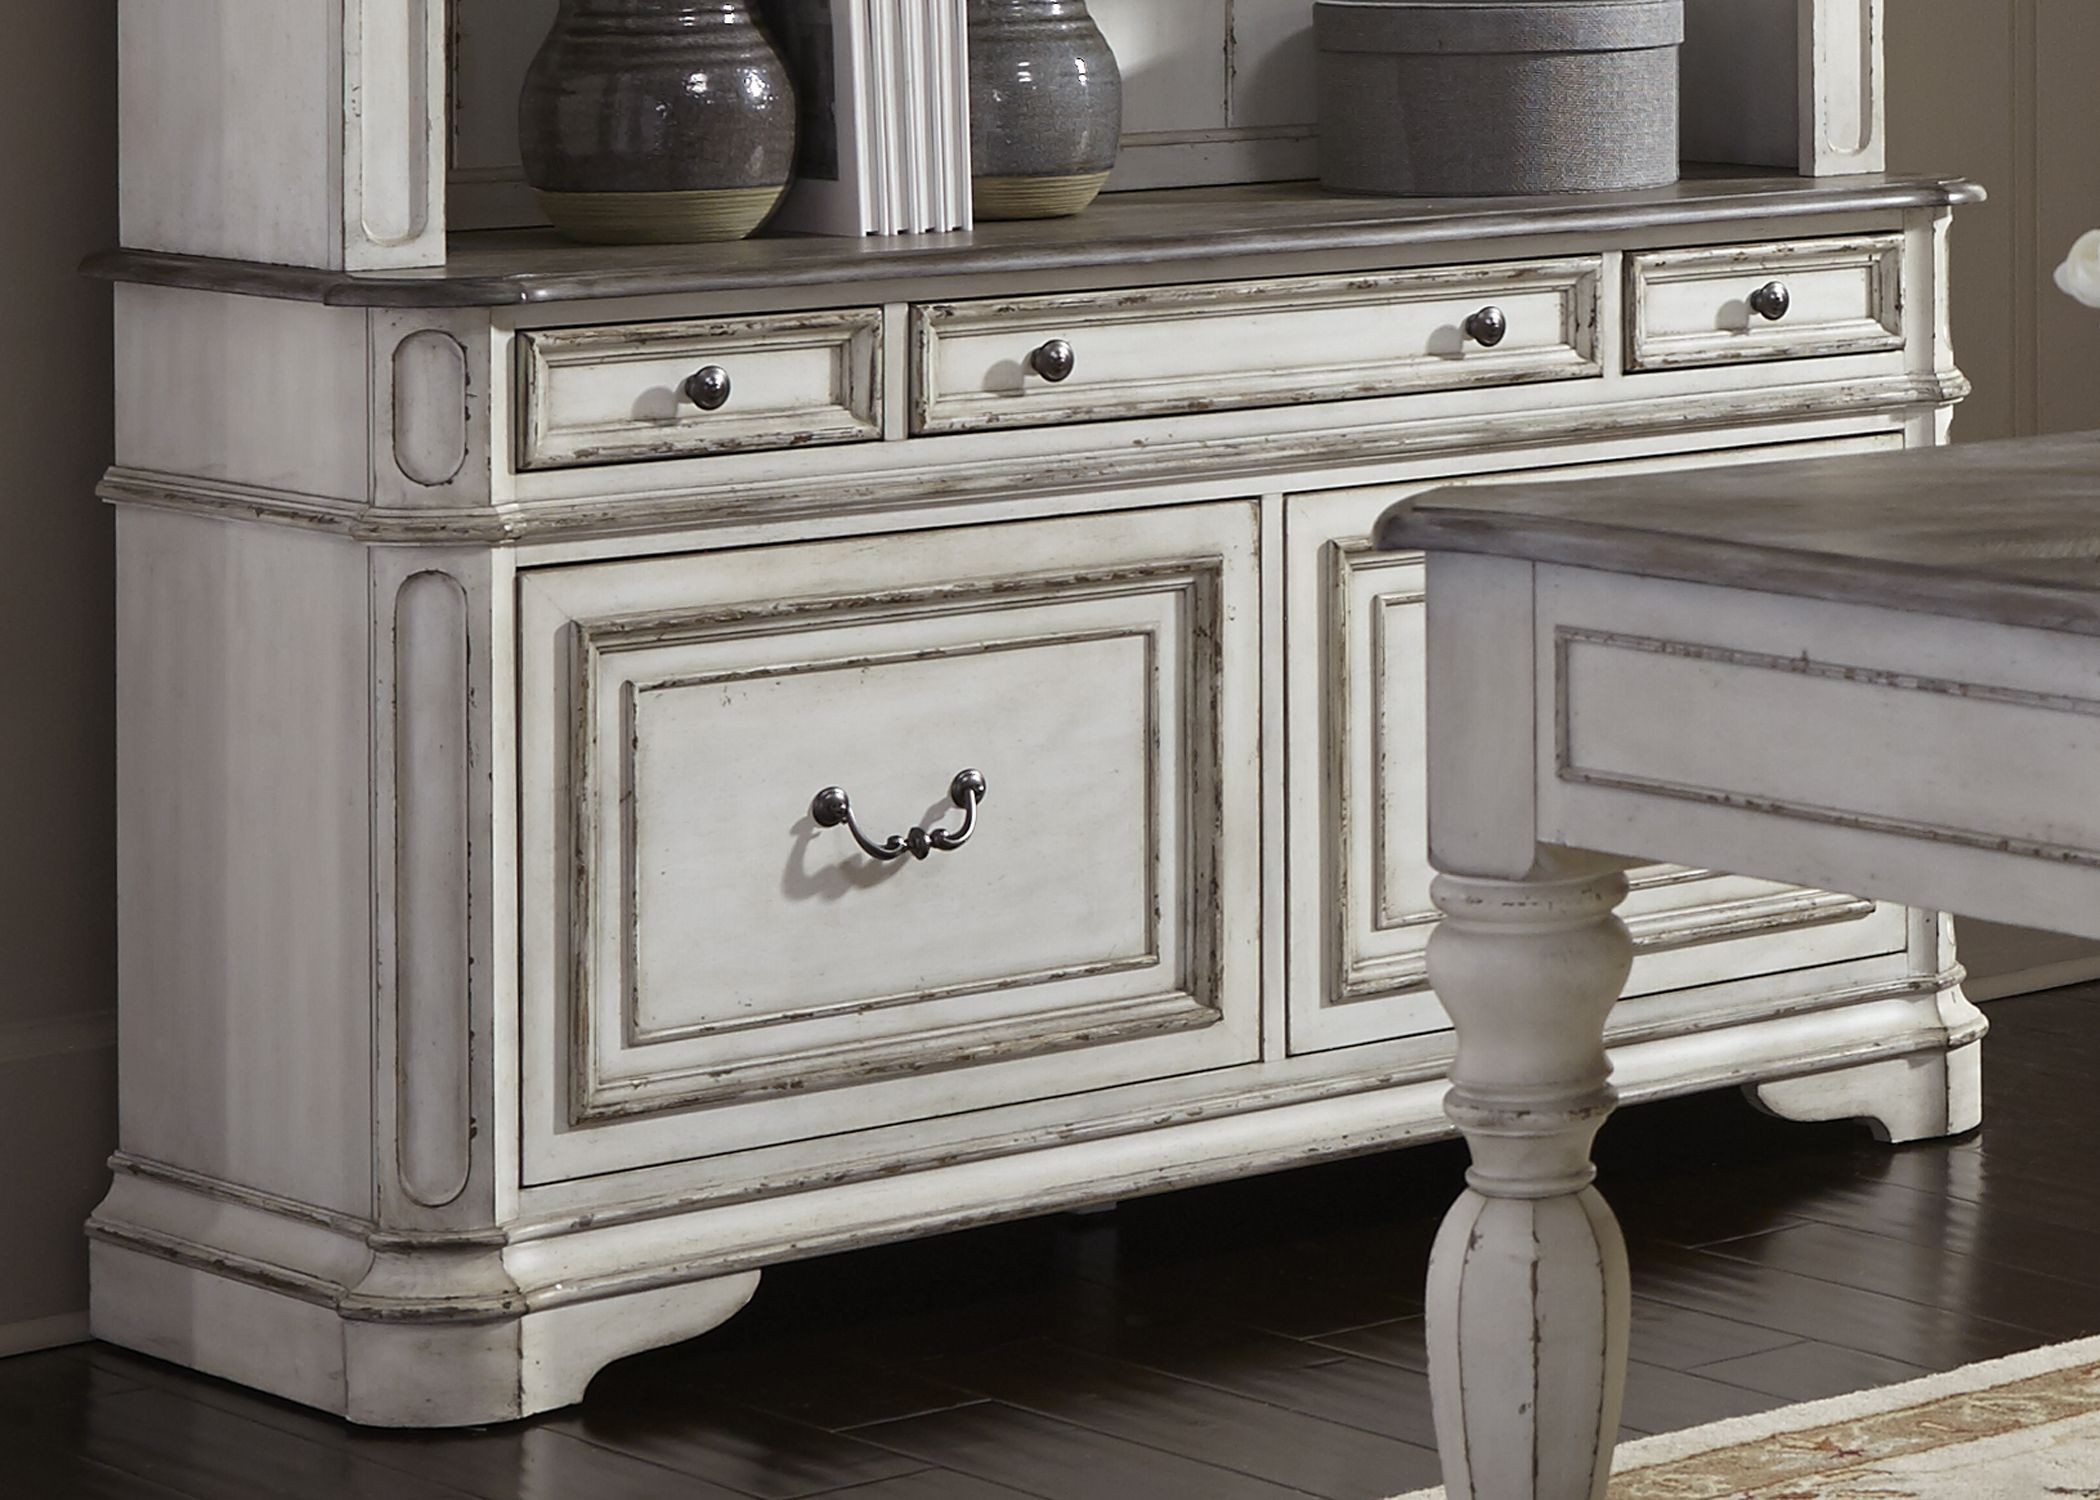 Design White Credenza magnolia manor antique white credenza from liberty coleman furniture 1803208